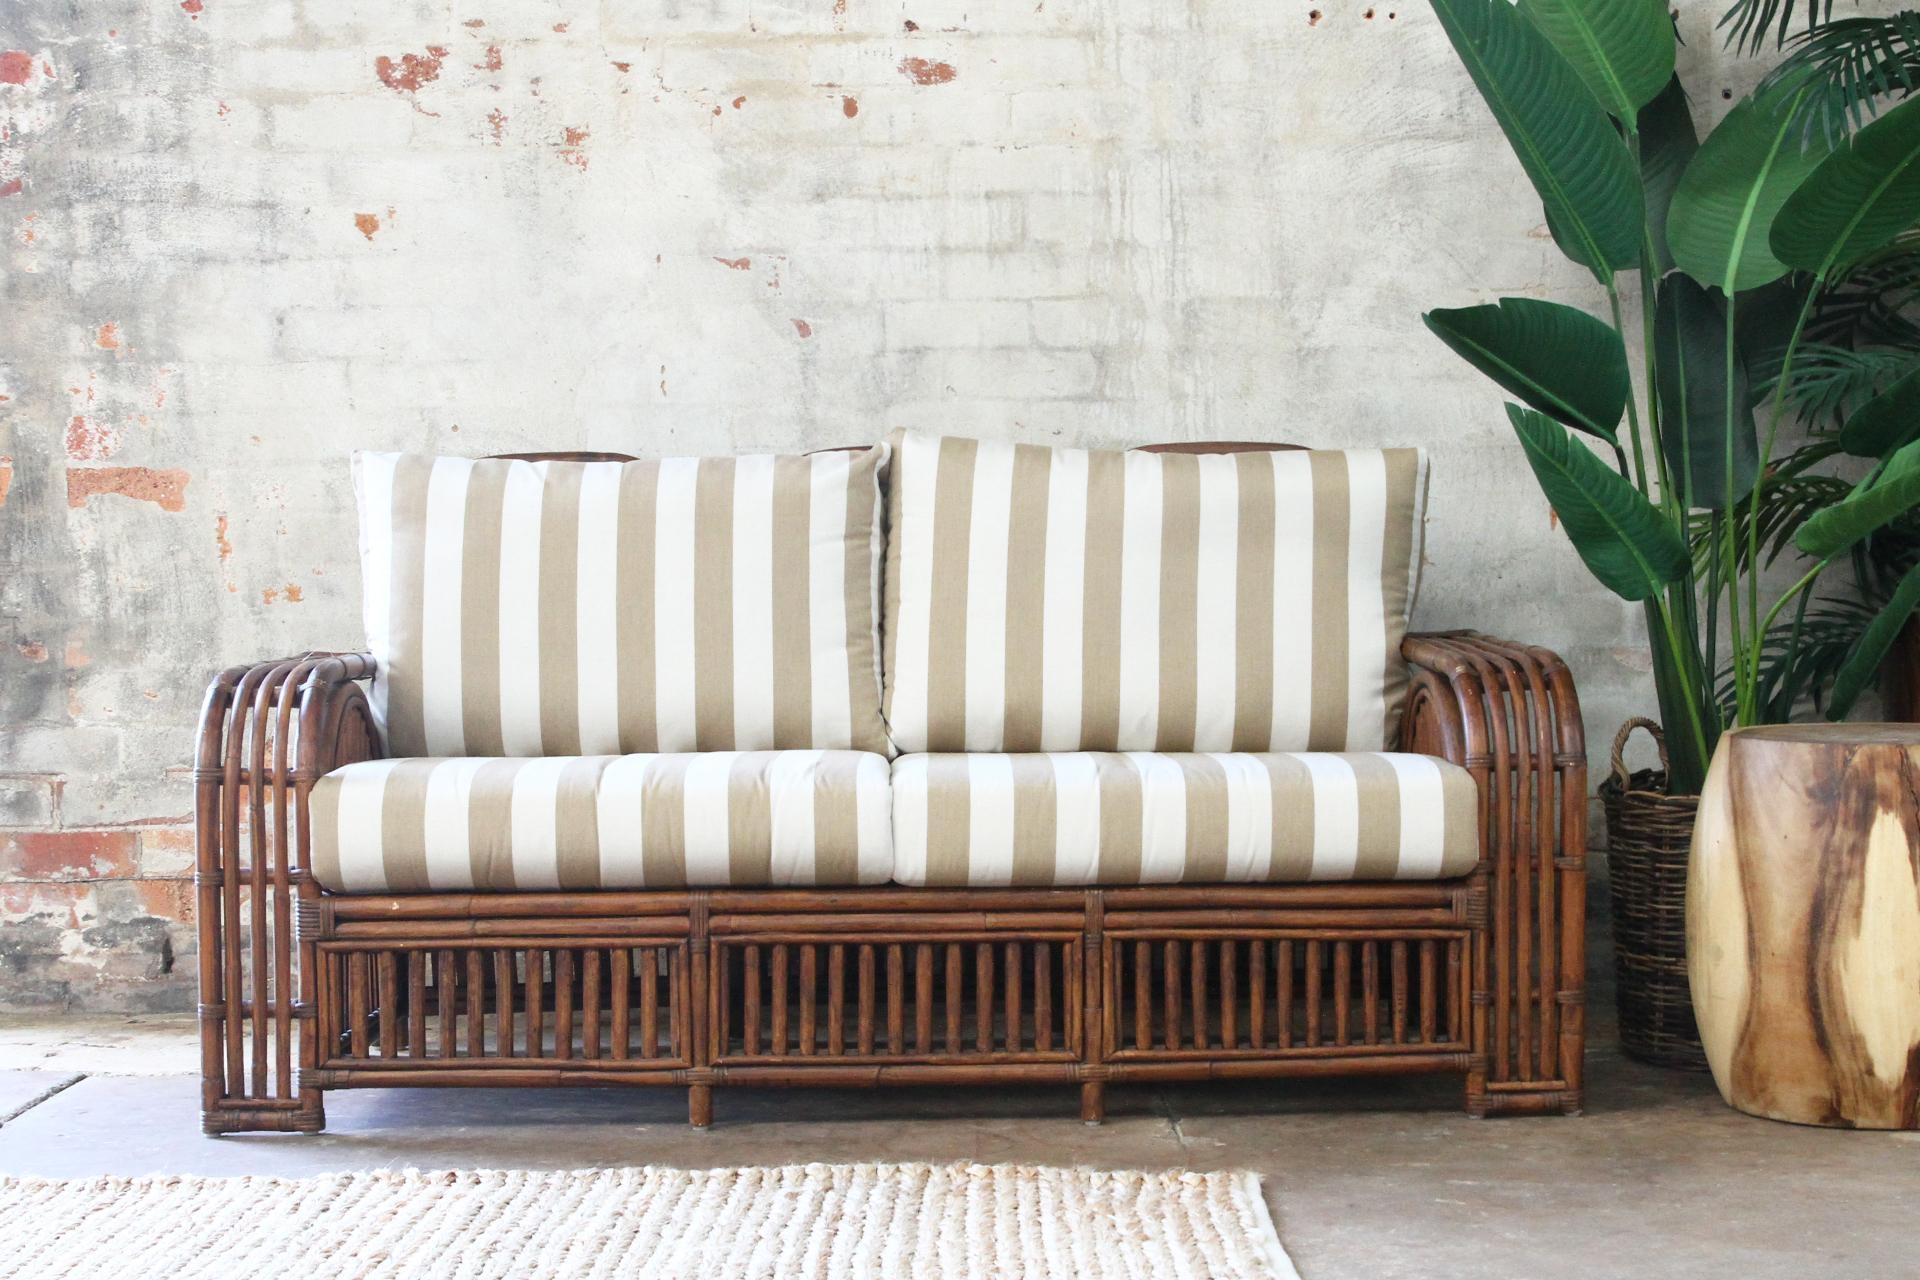 White Cane Furniture | Naturally Cane Rattan And Wicker Furniture Throughout White Cane Sofas (View 8 of 25)